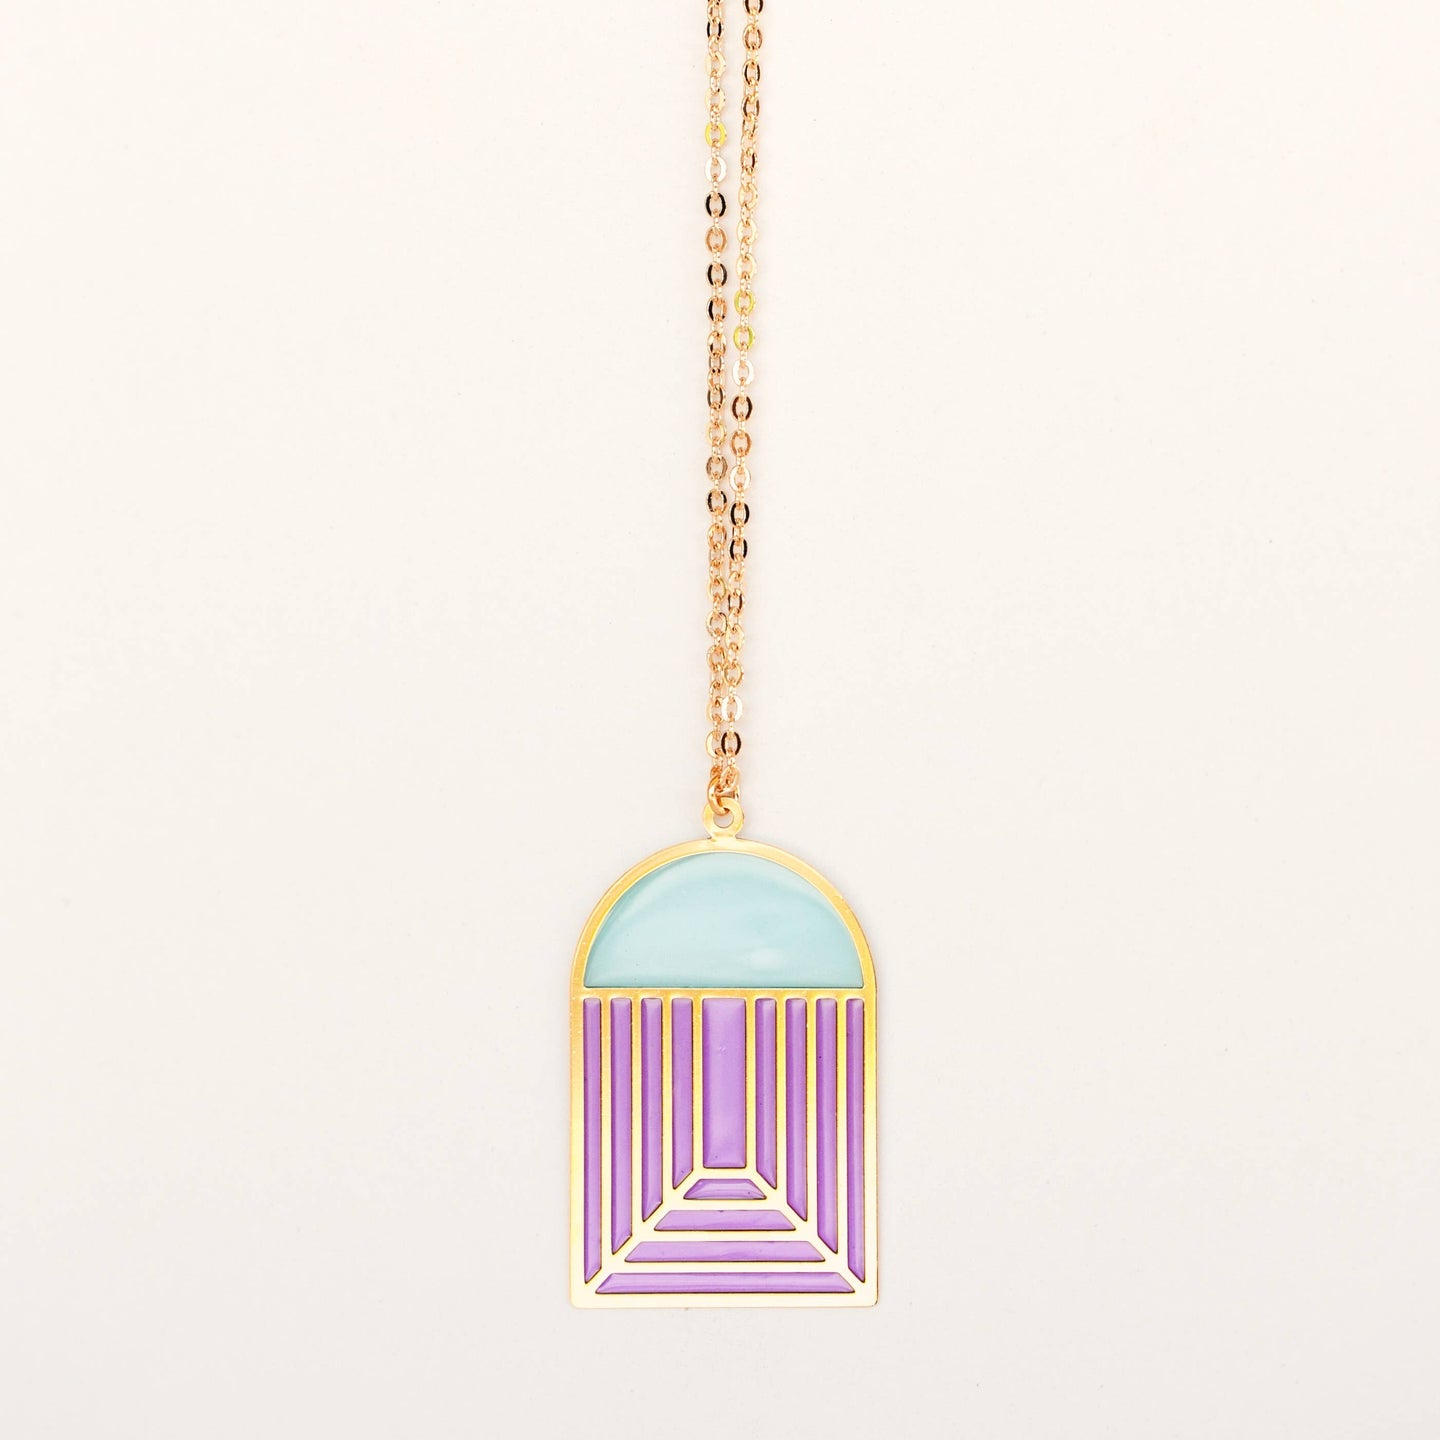 Translucent Charm Necklace